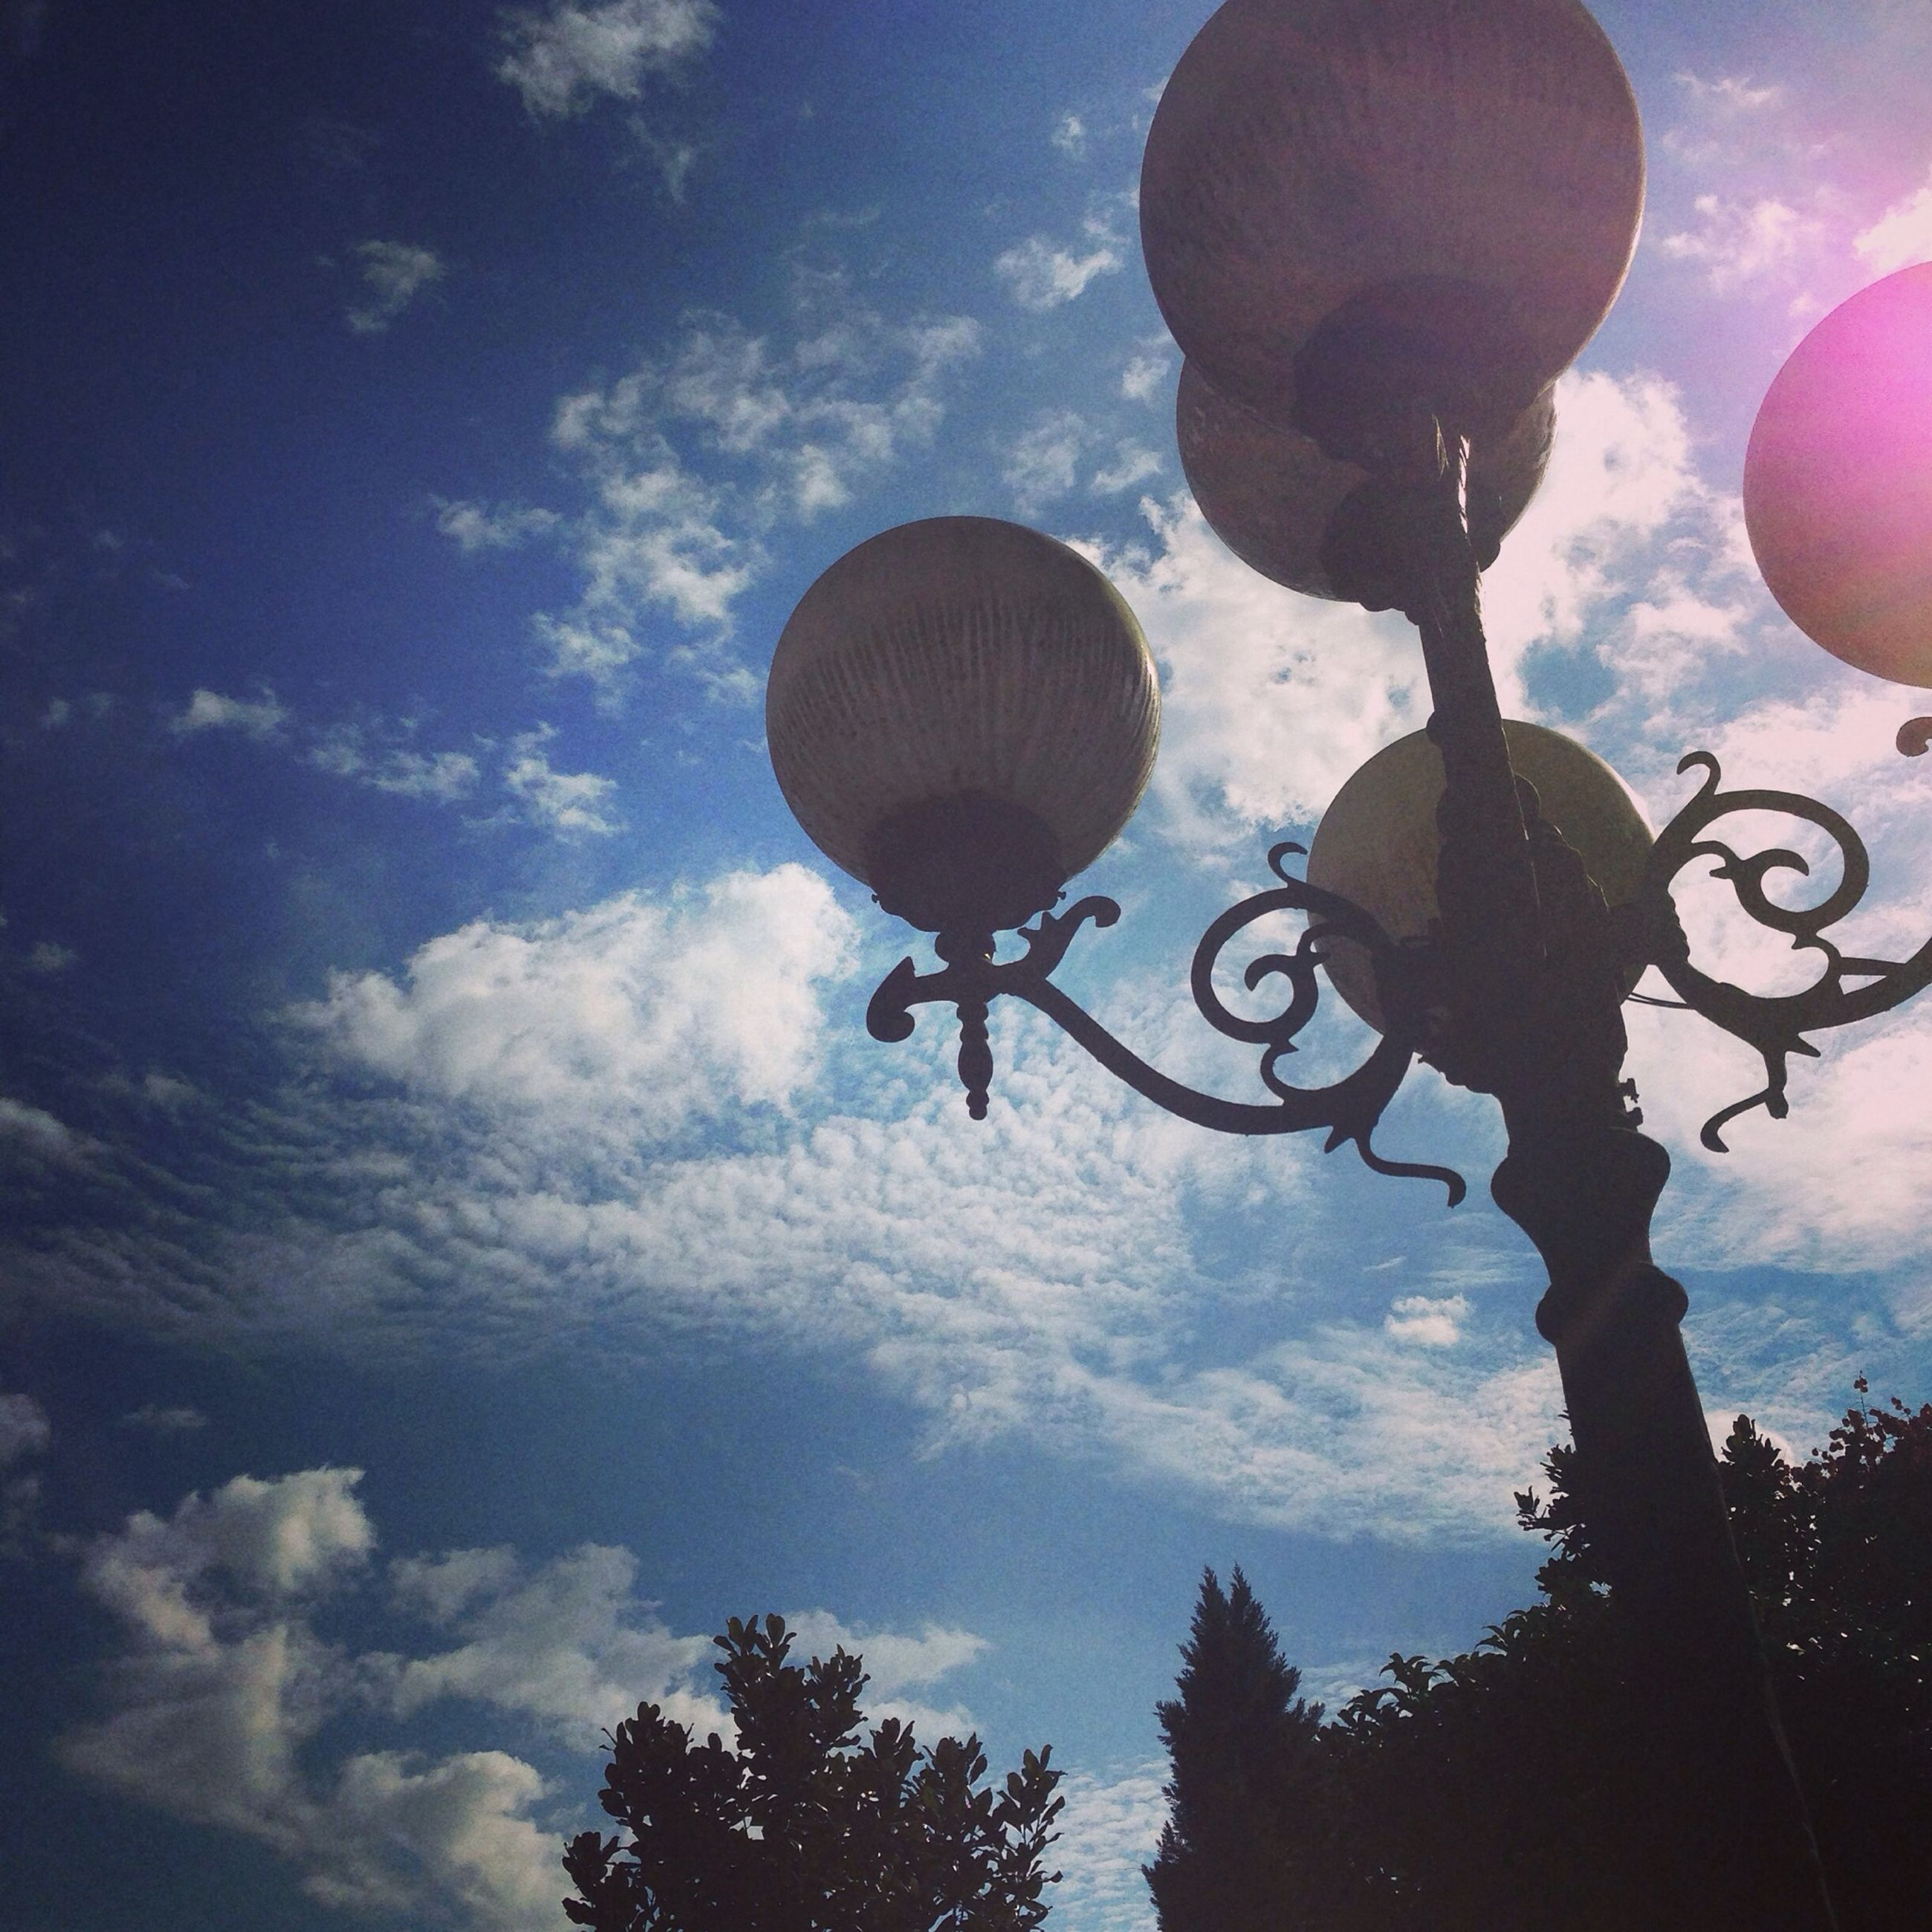 low angle view, sky, tree, lighting equipment, street light, hanging, cloud - sky, silhouette, balloon, outdoors, nature, cloud, blue, dusk, branch, day, leisure activity, electric light, sphere